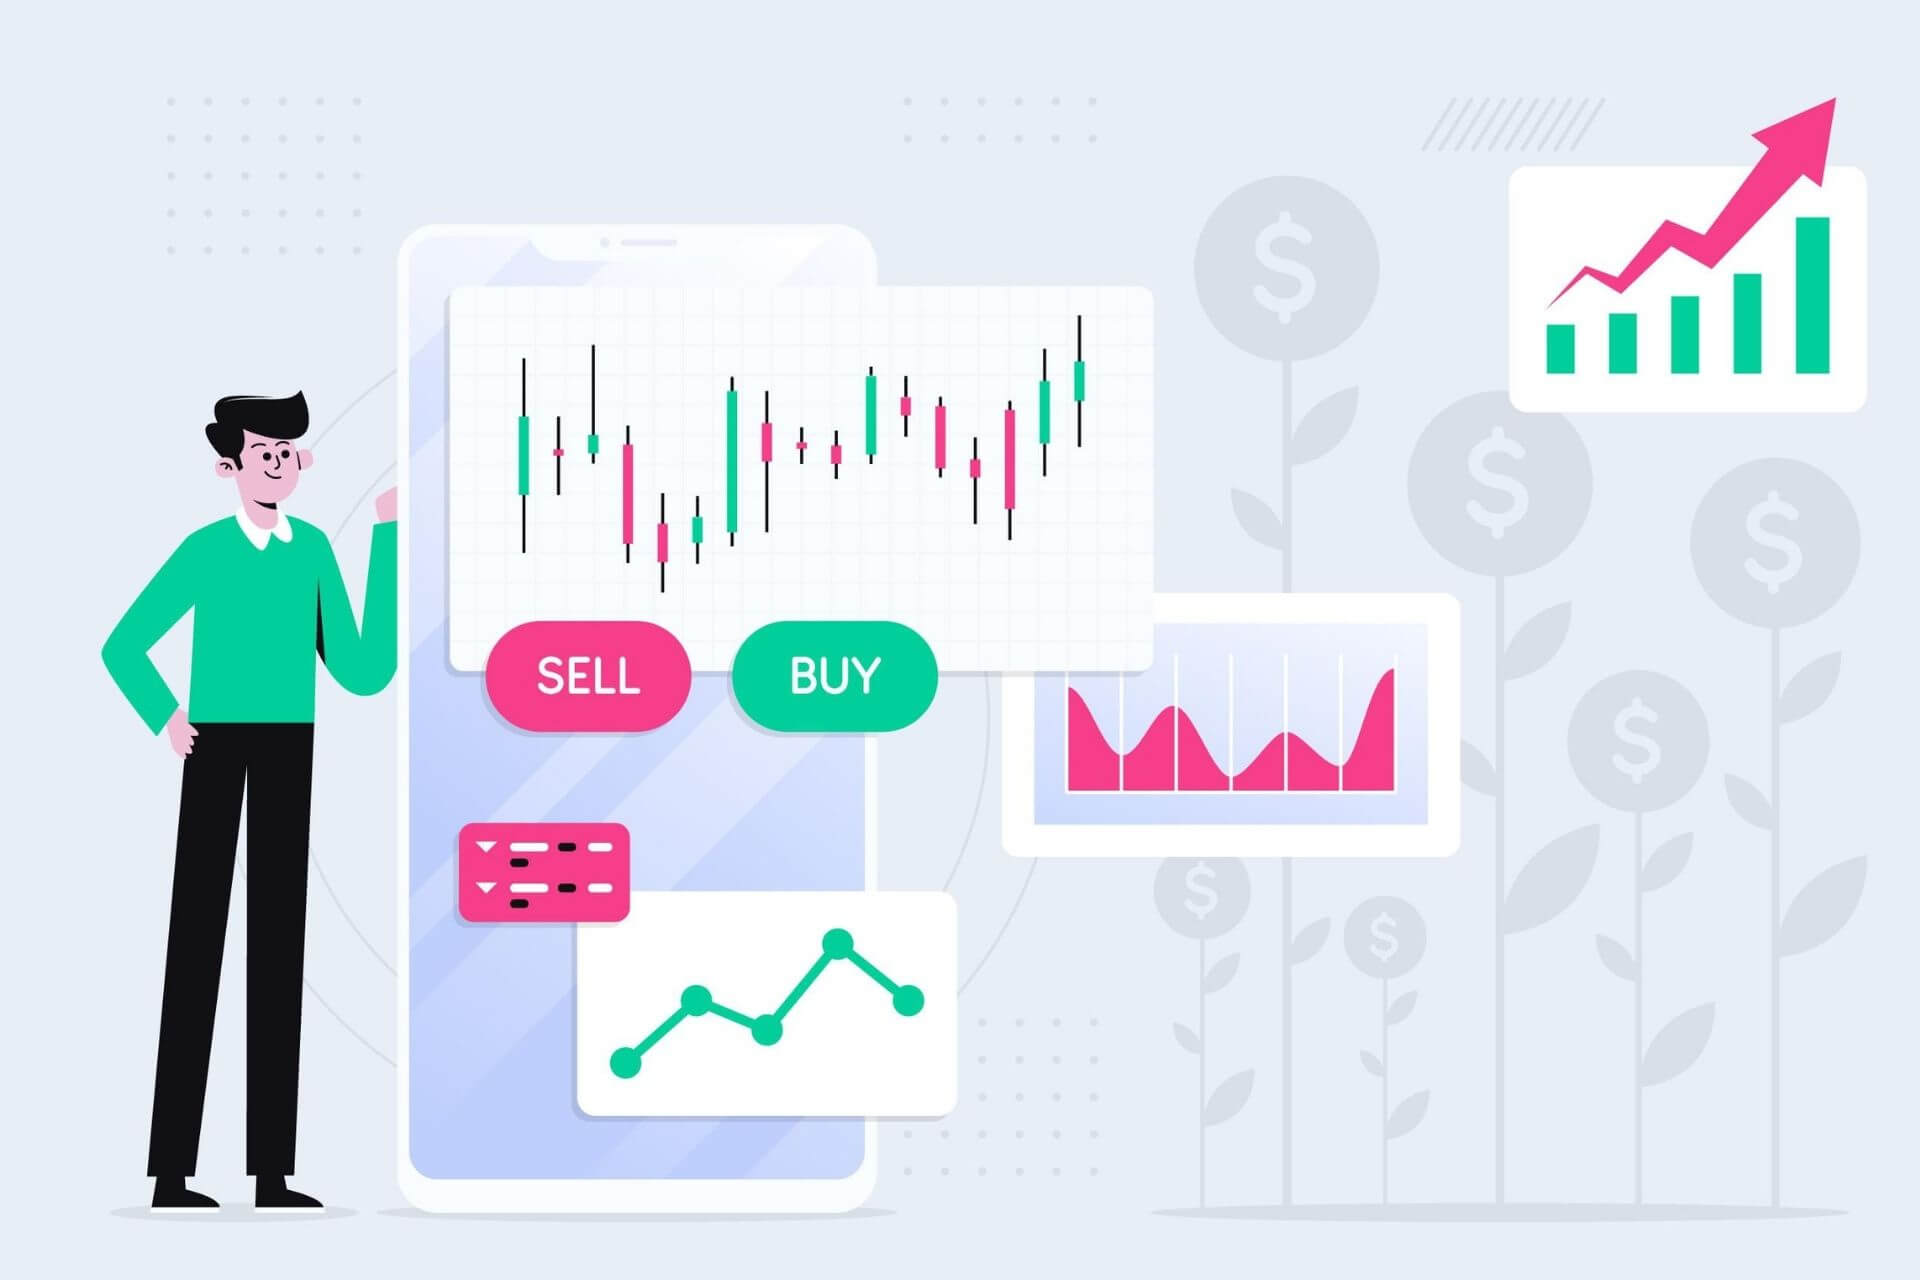 How to Trade Options In India? Step-by-Step Guide!